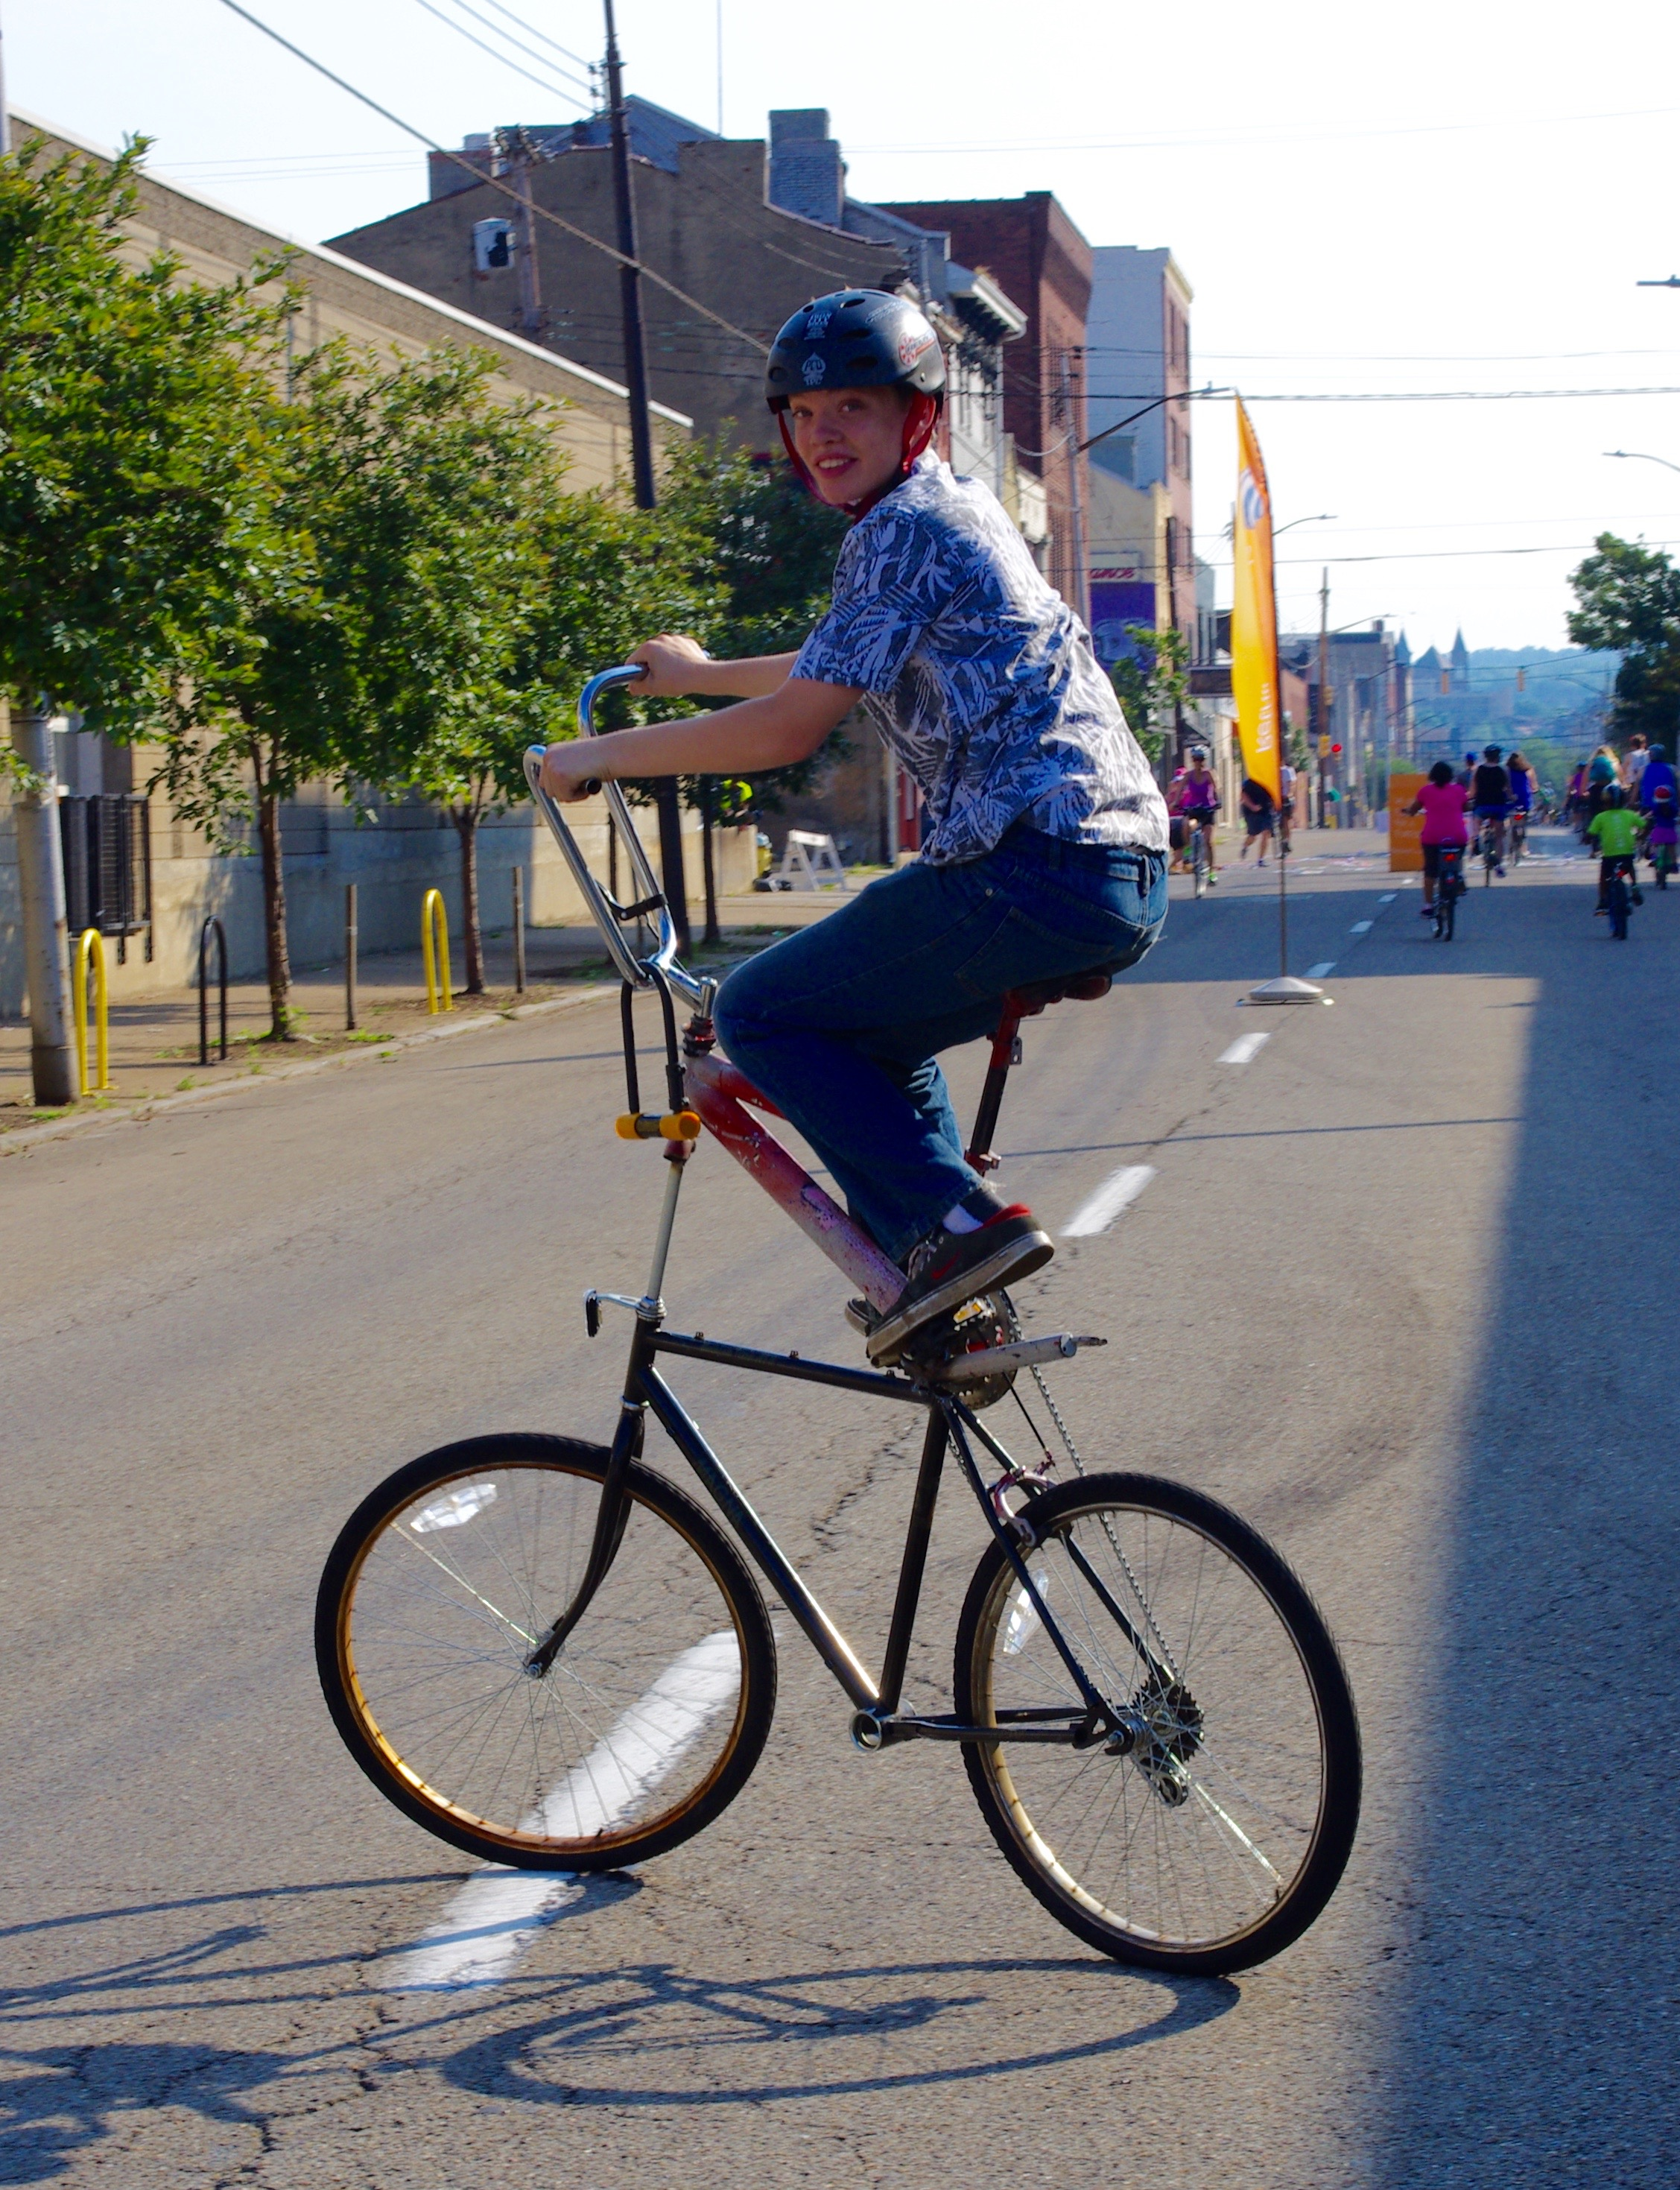 Linus Pietrusza, 16, riding his homemade tall bike, which puts a BMX frame on top of a mountain bike.